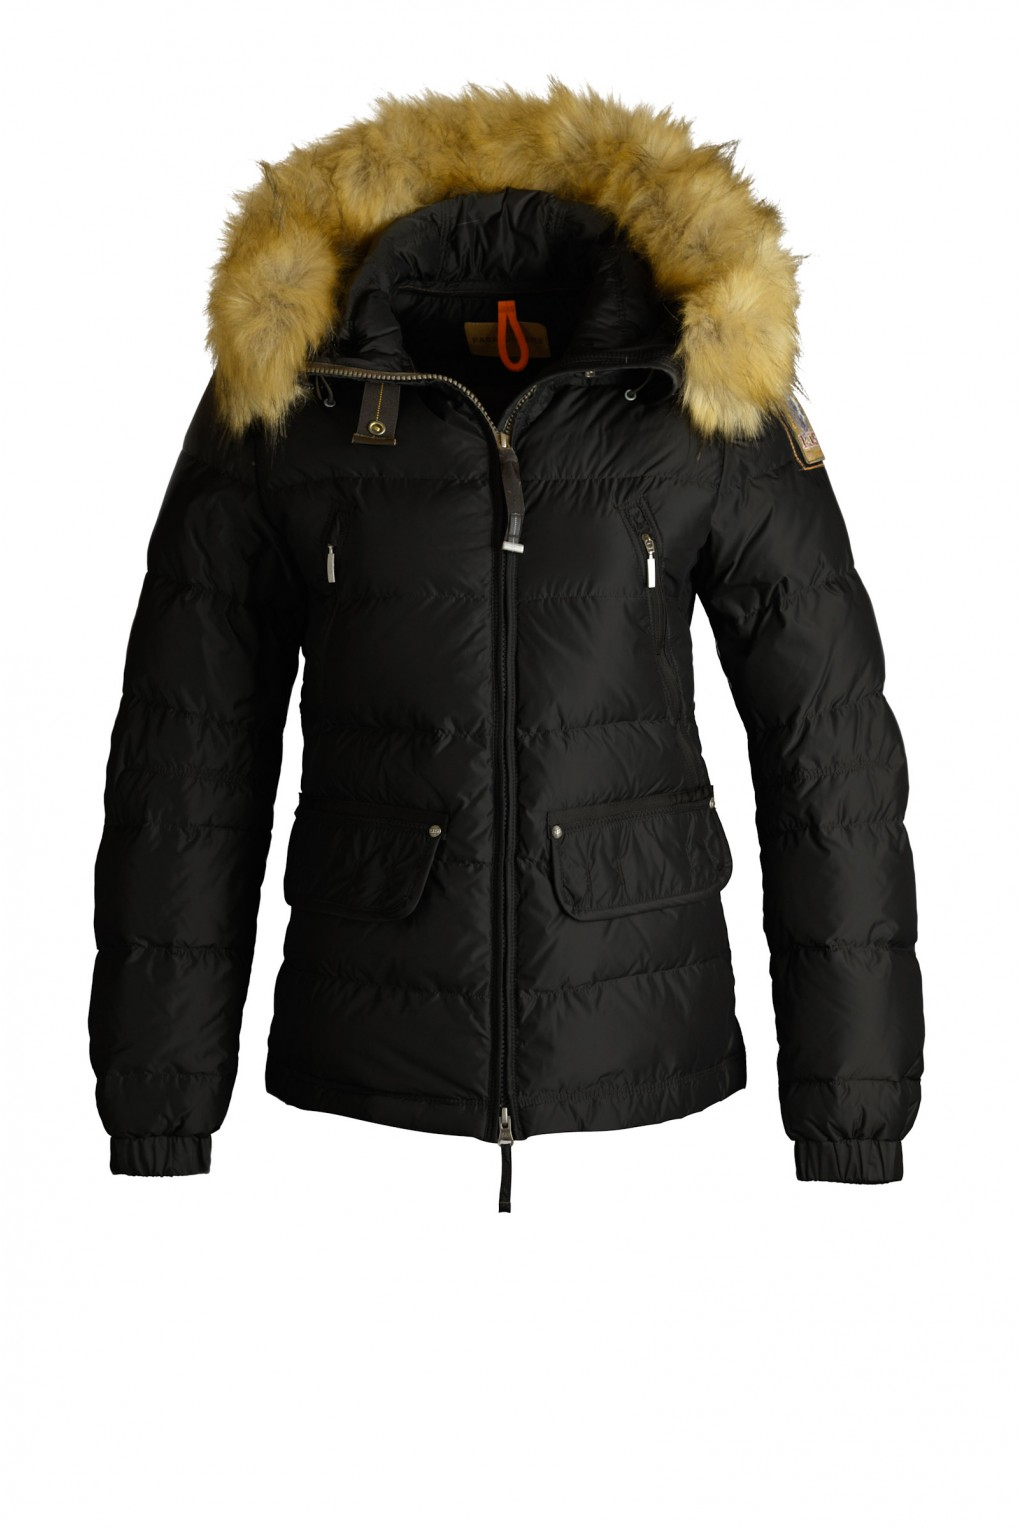 parajumpers ALASKA ECO woman outerwear Black